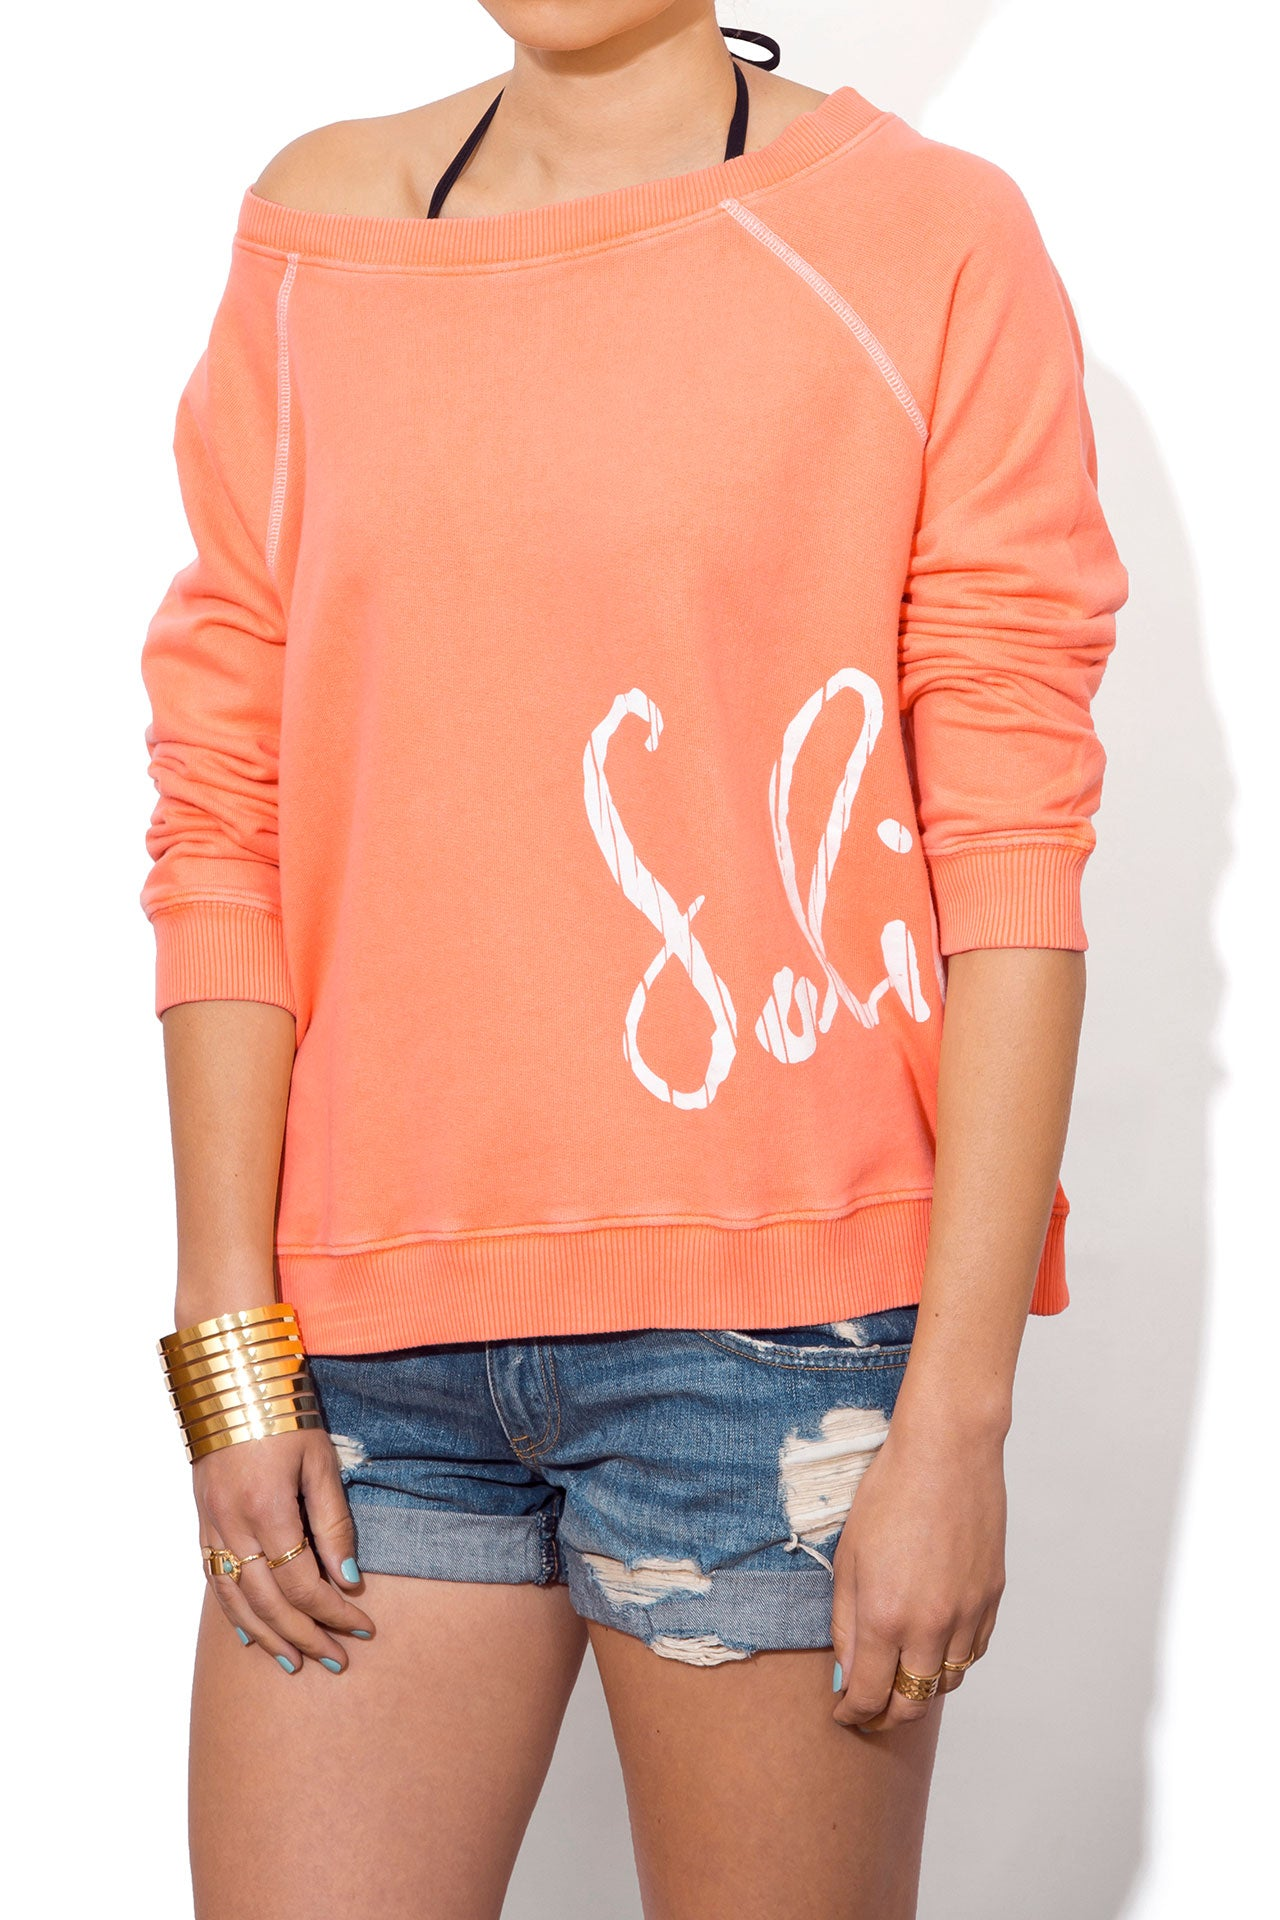 ea86da9d30 Women's Baggy, Oversized Sweatshirt | Beach Boho Coral | Solillas ...